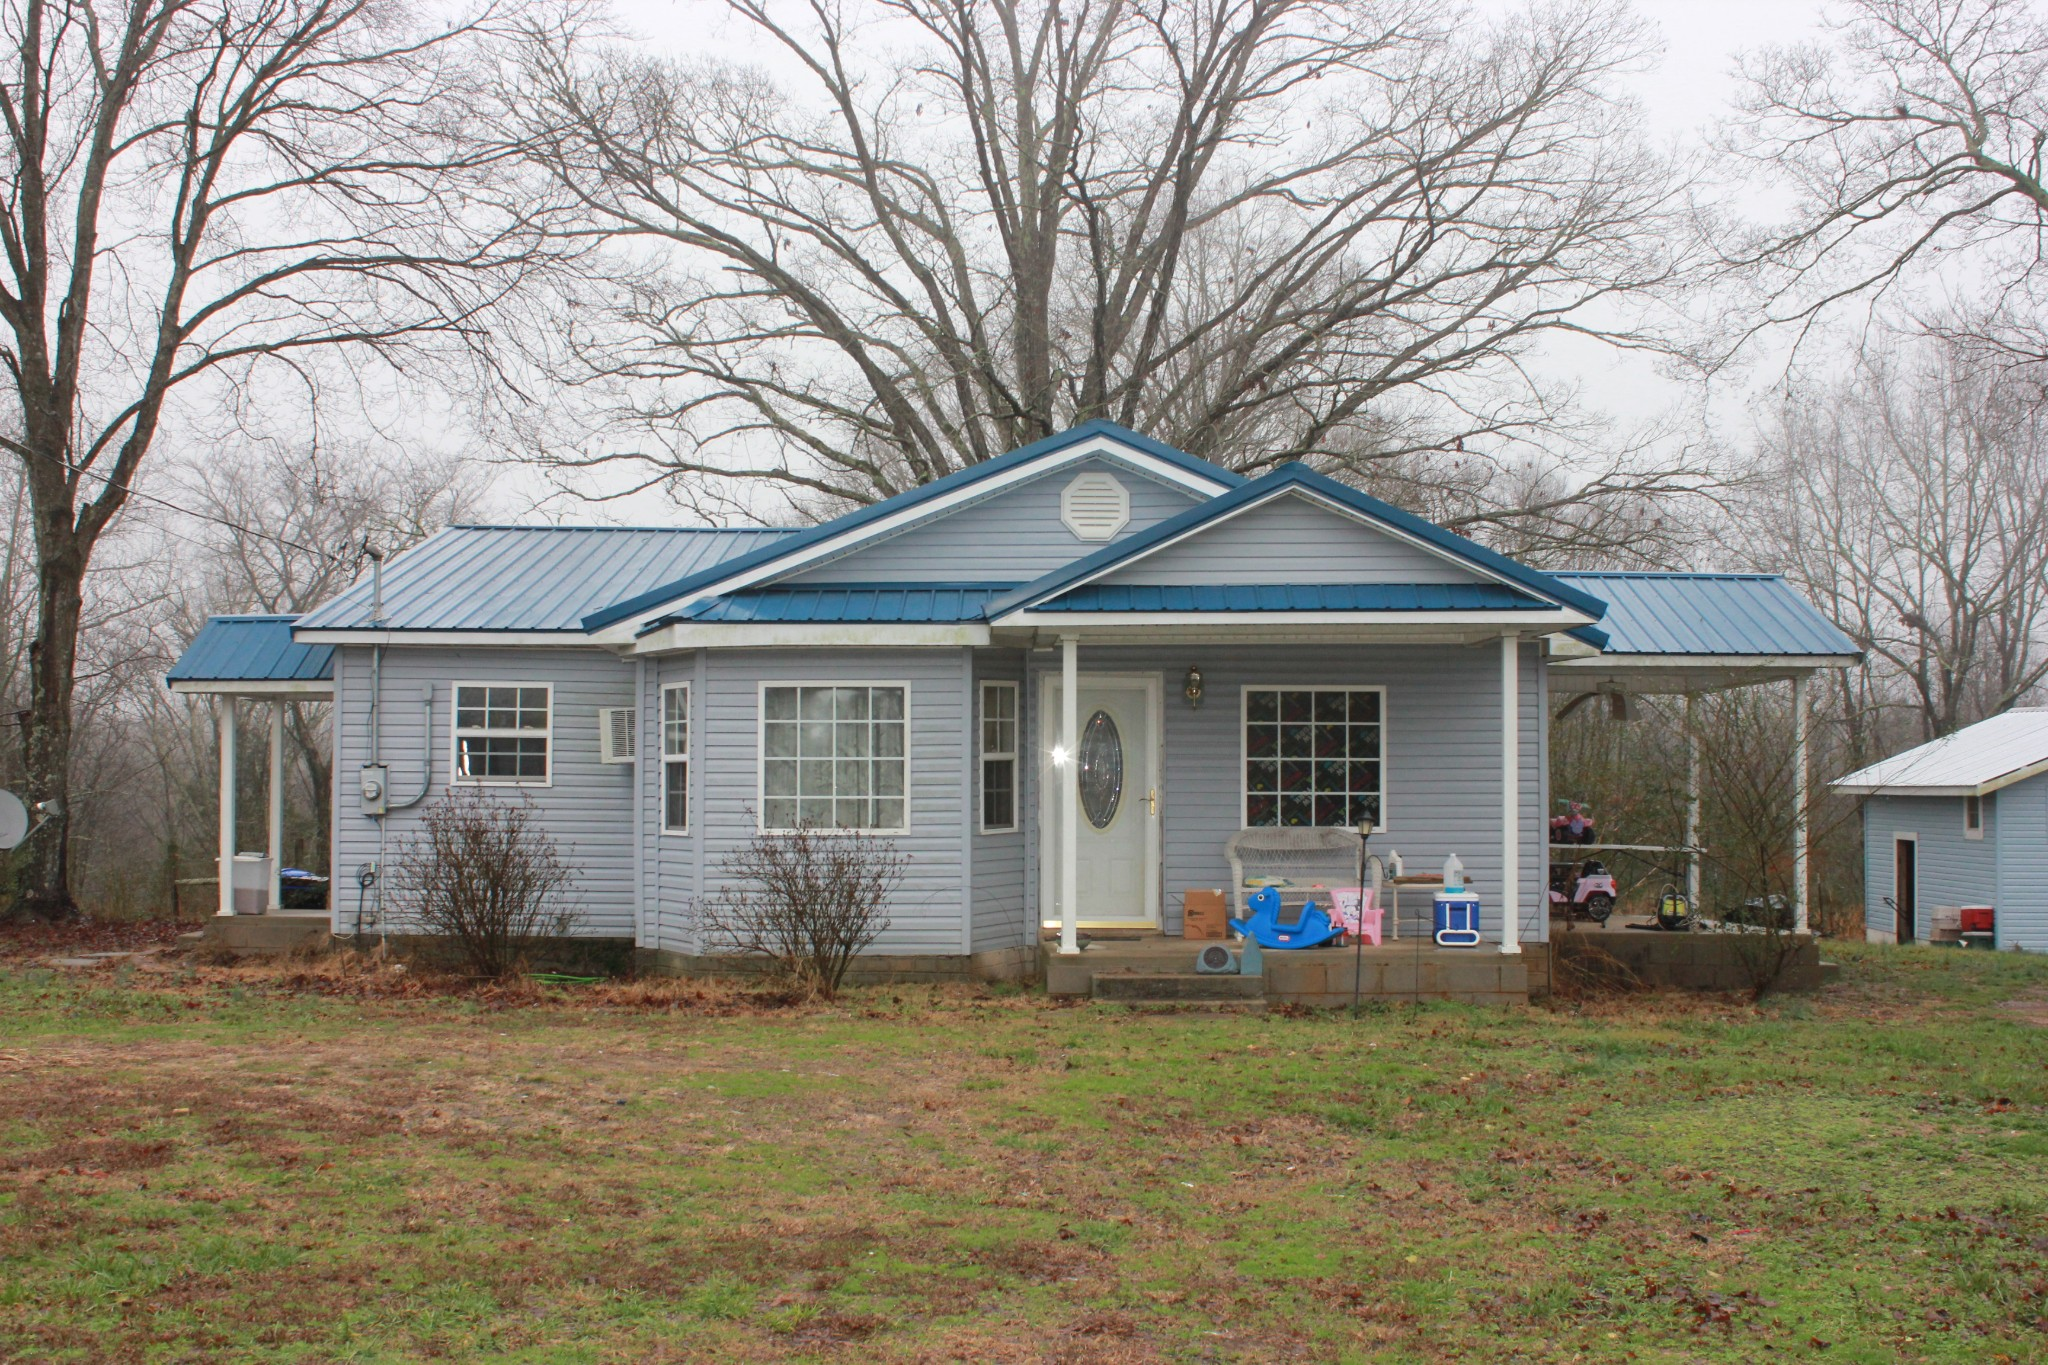 72 Johnson Dr, Loretto, TN 38469 - Loretto, TN real estate listing